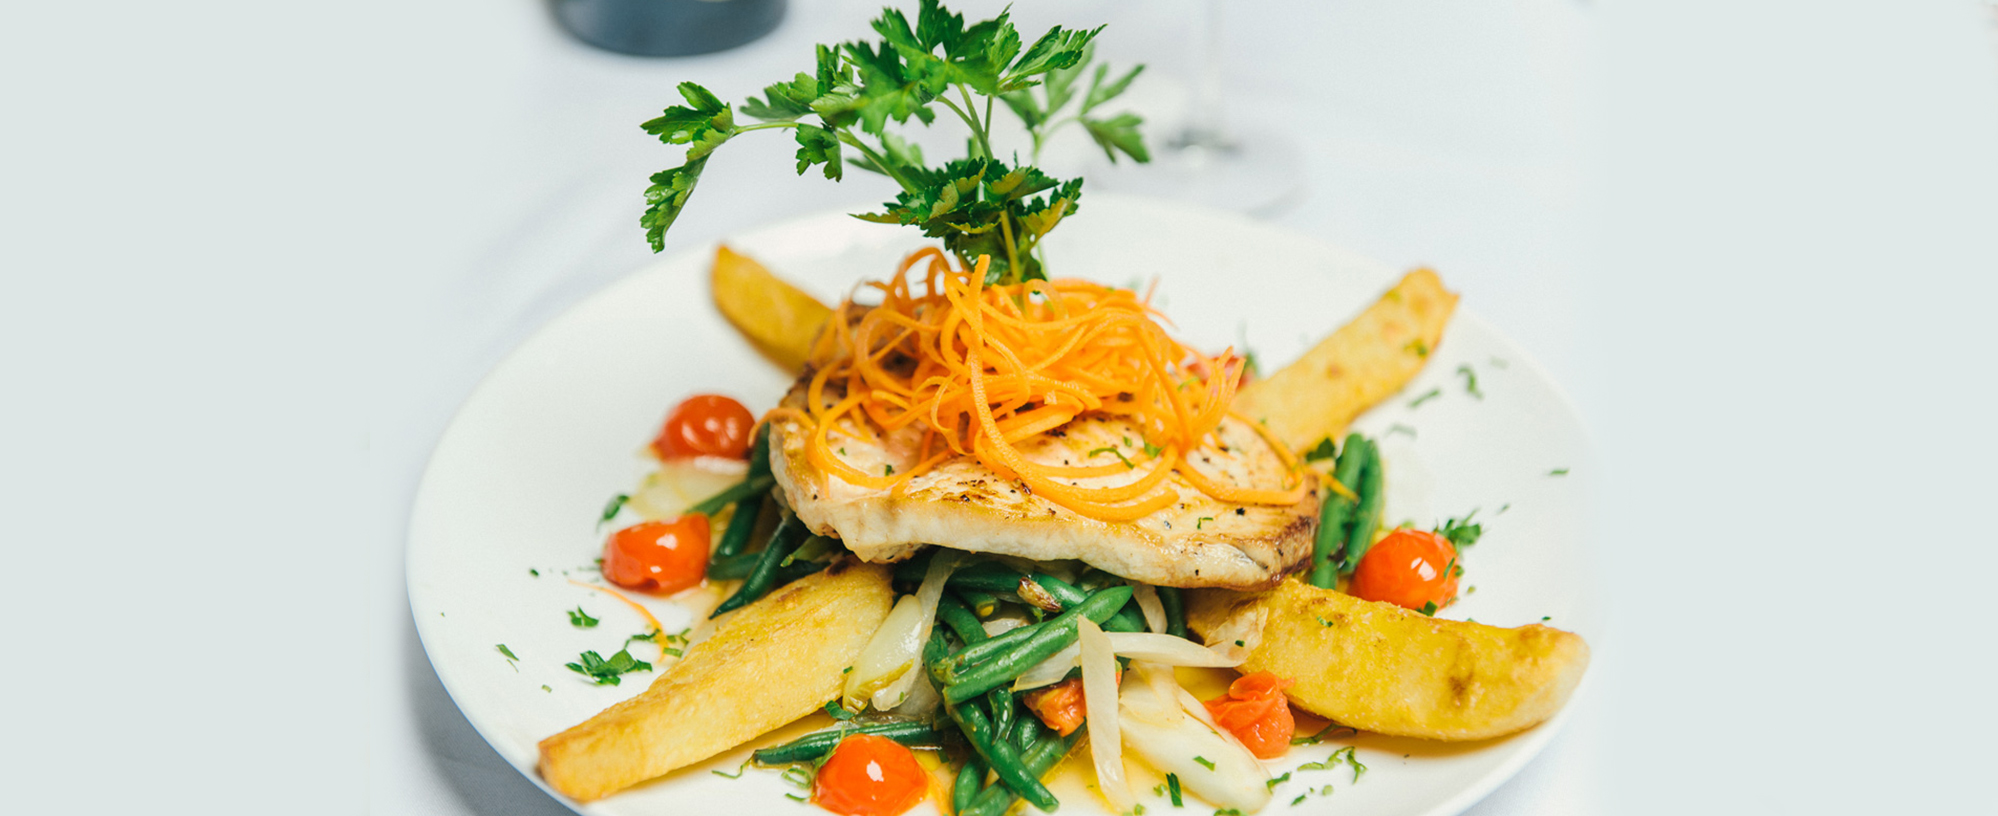 A vibrant dish from Cafe Luna